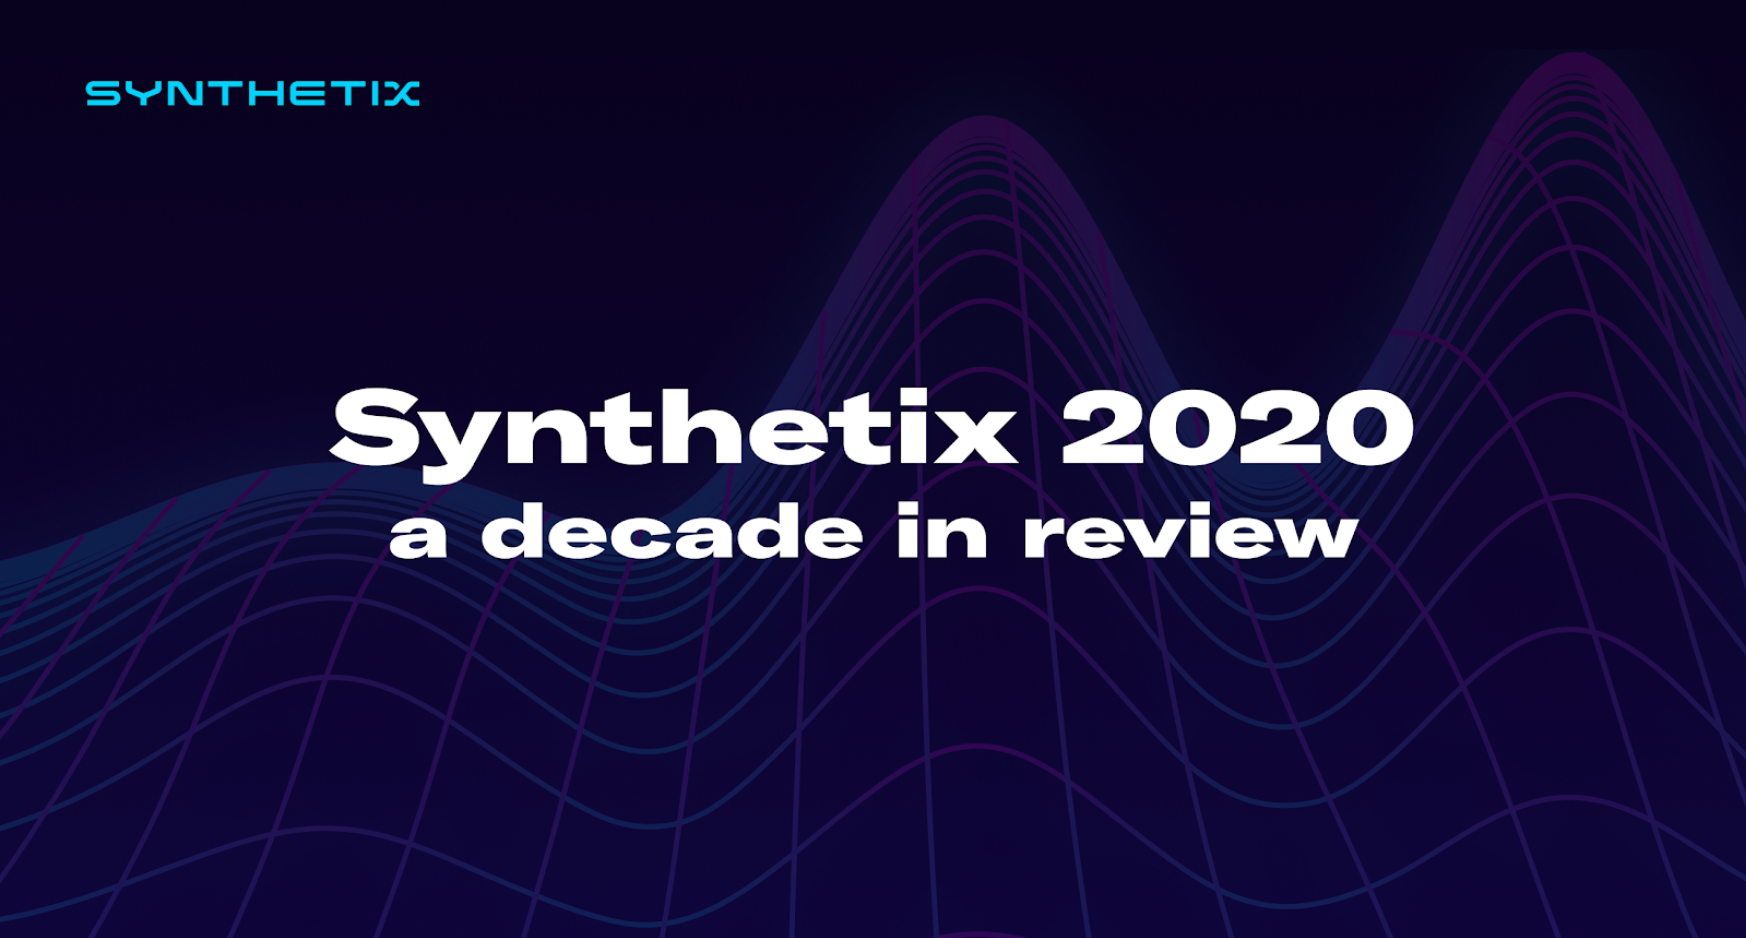 Synthetix 2020 - A decade in review